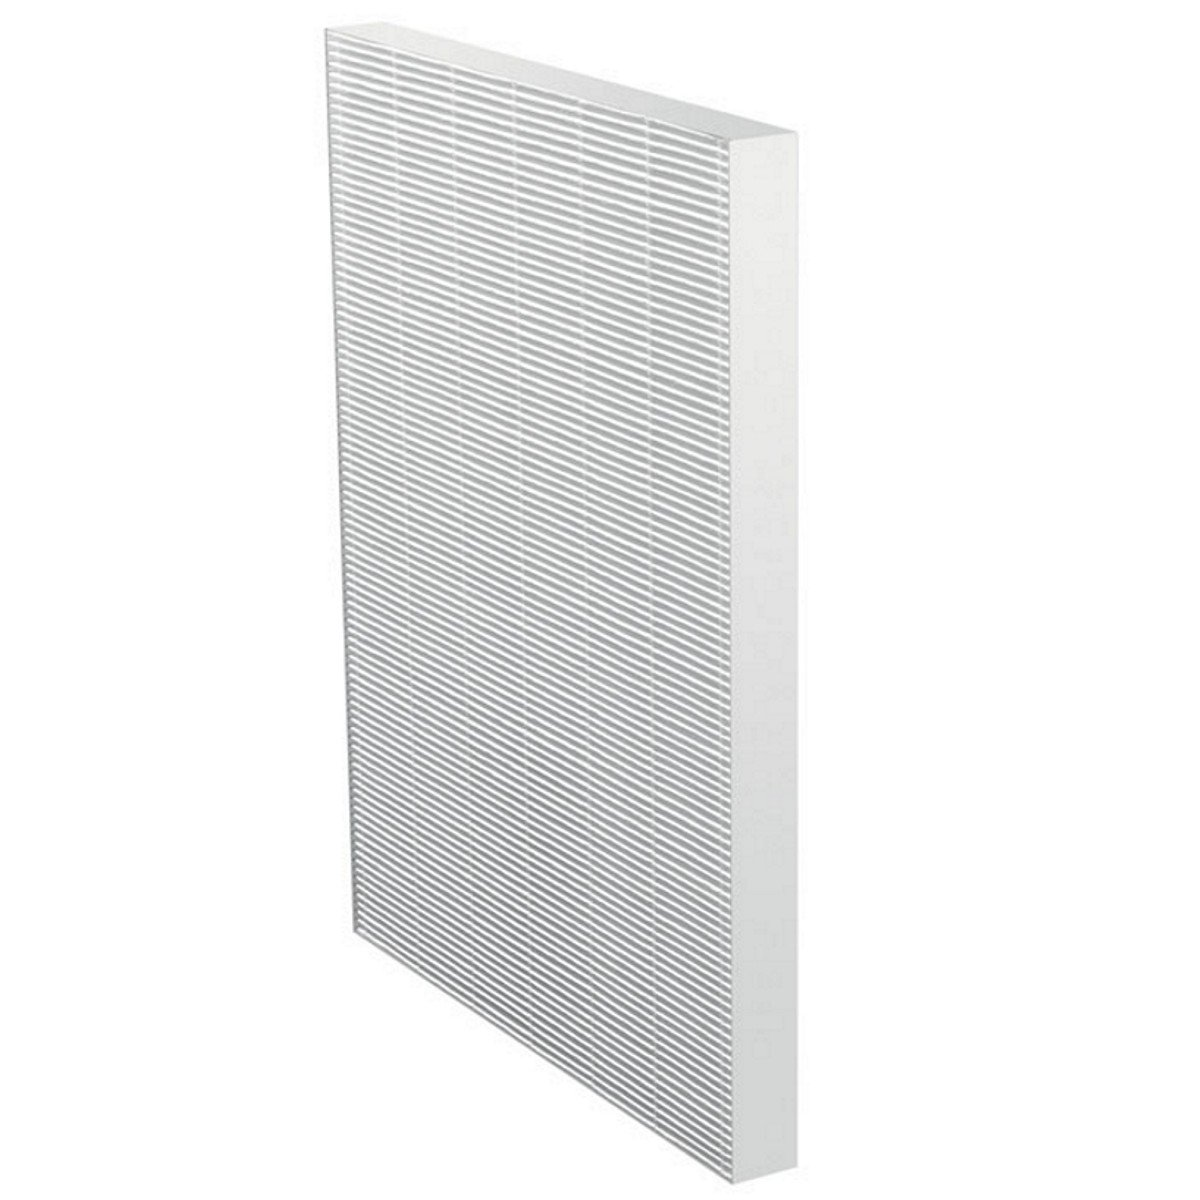 Electrolux 900167651 EF113 Filtro HEPA per Filtro dell'Aria Air Cleaner EAP150